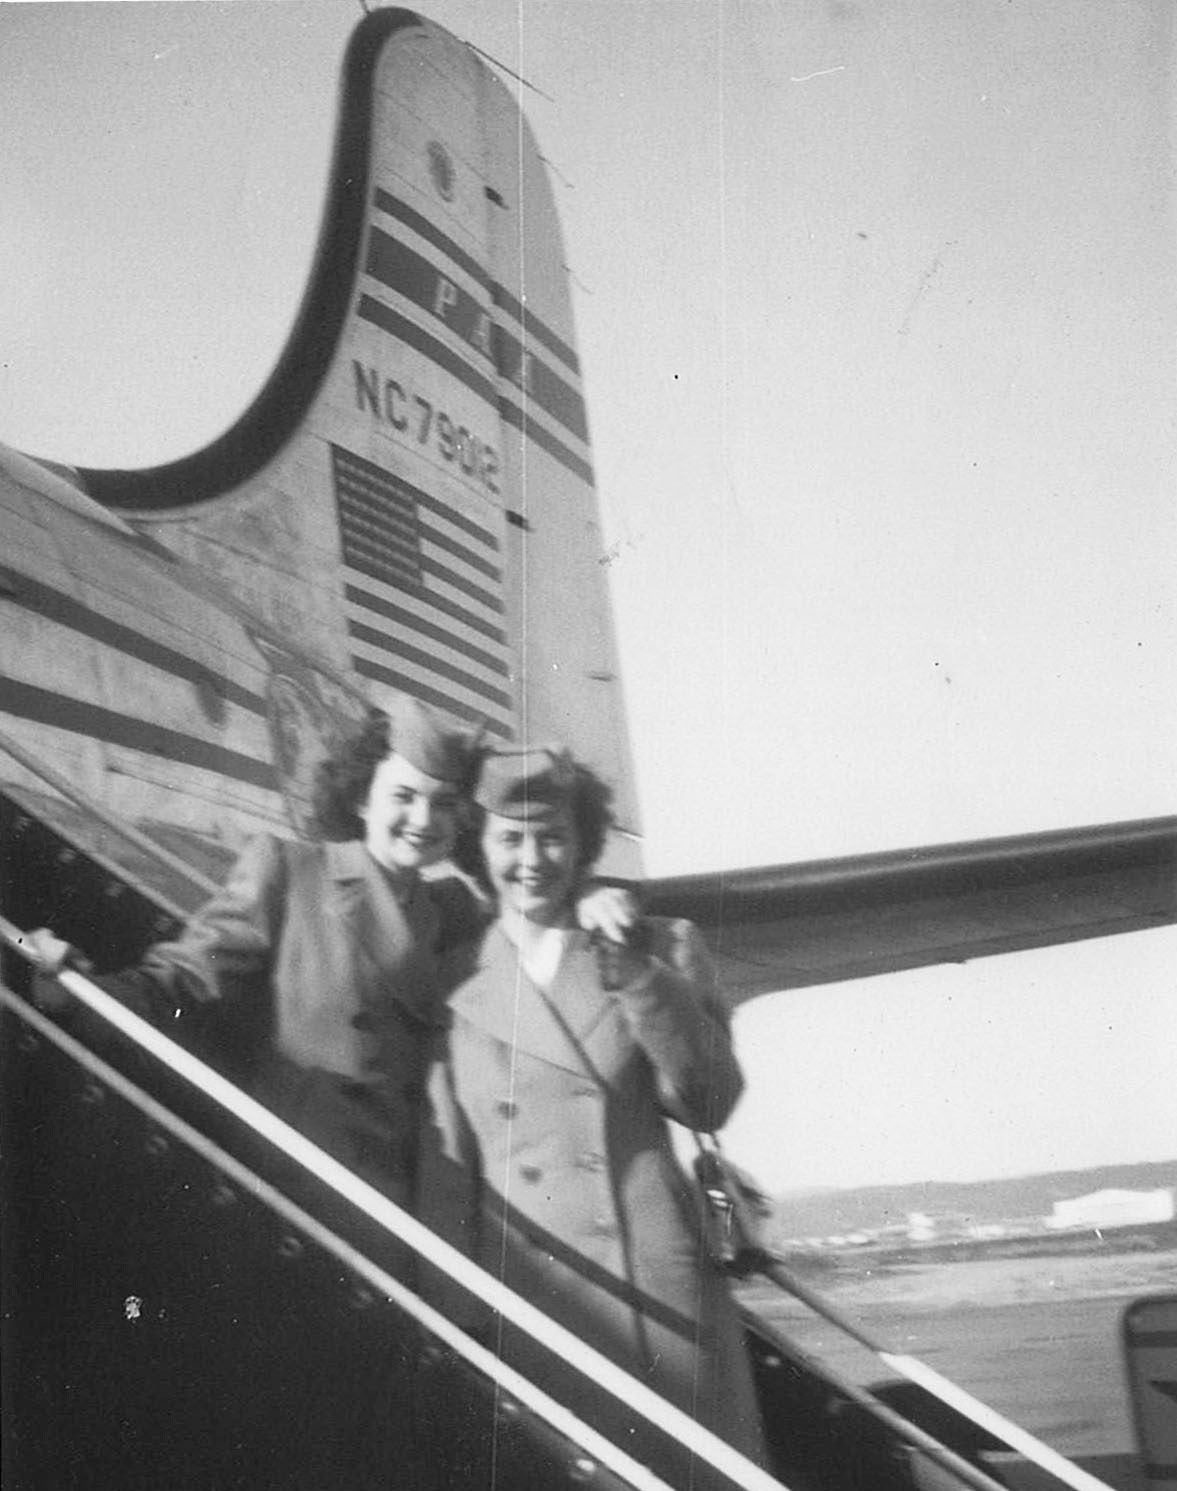 Boeing Field Airport, Seattle, 1946. Madeline and a fellow stewardess.